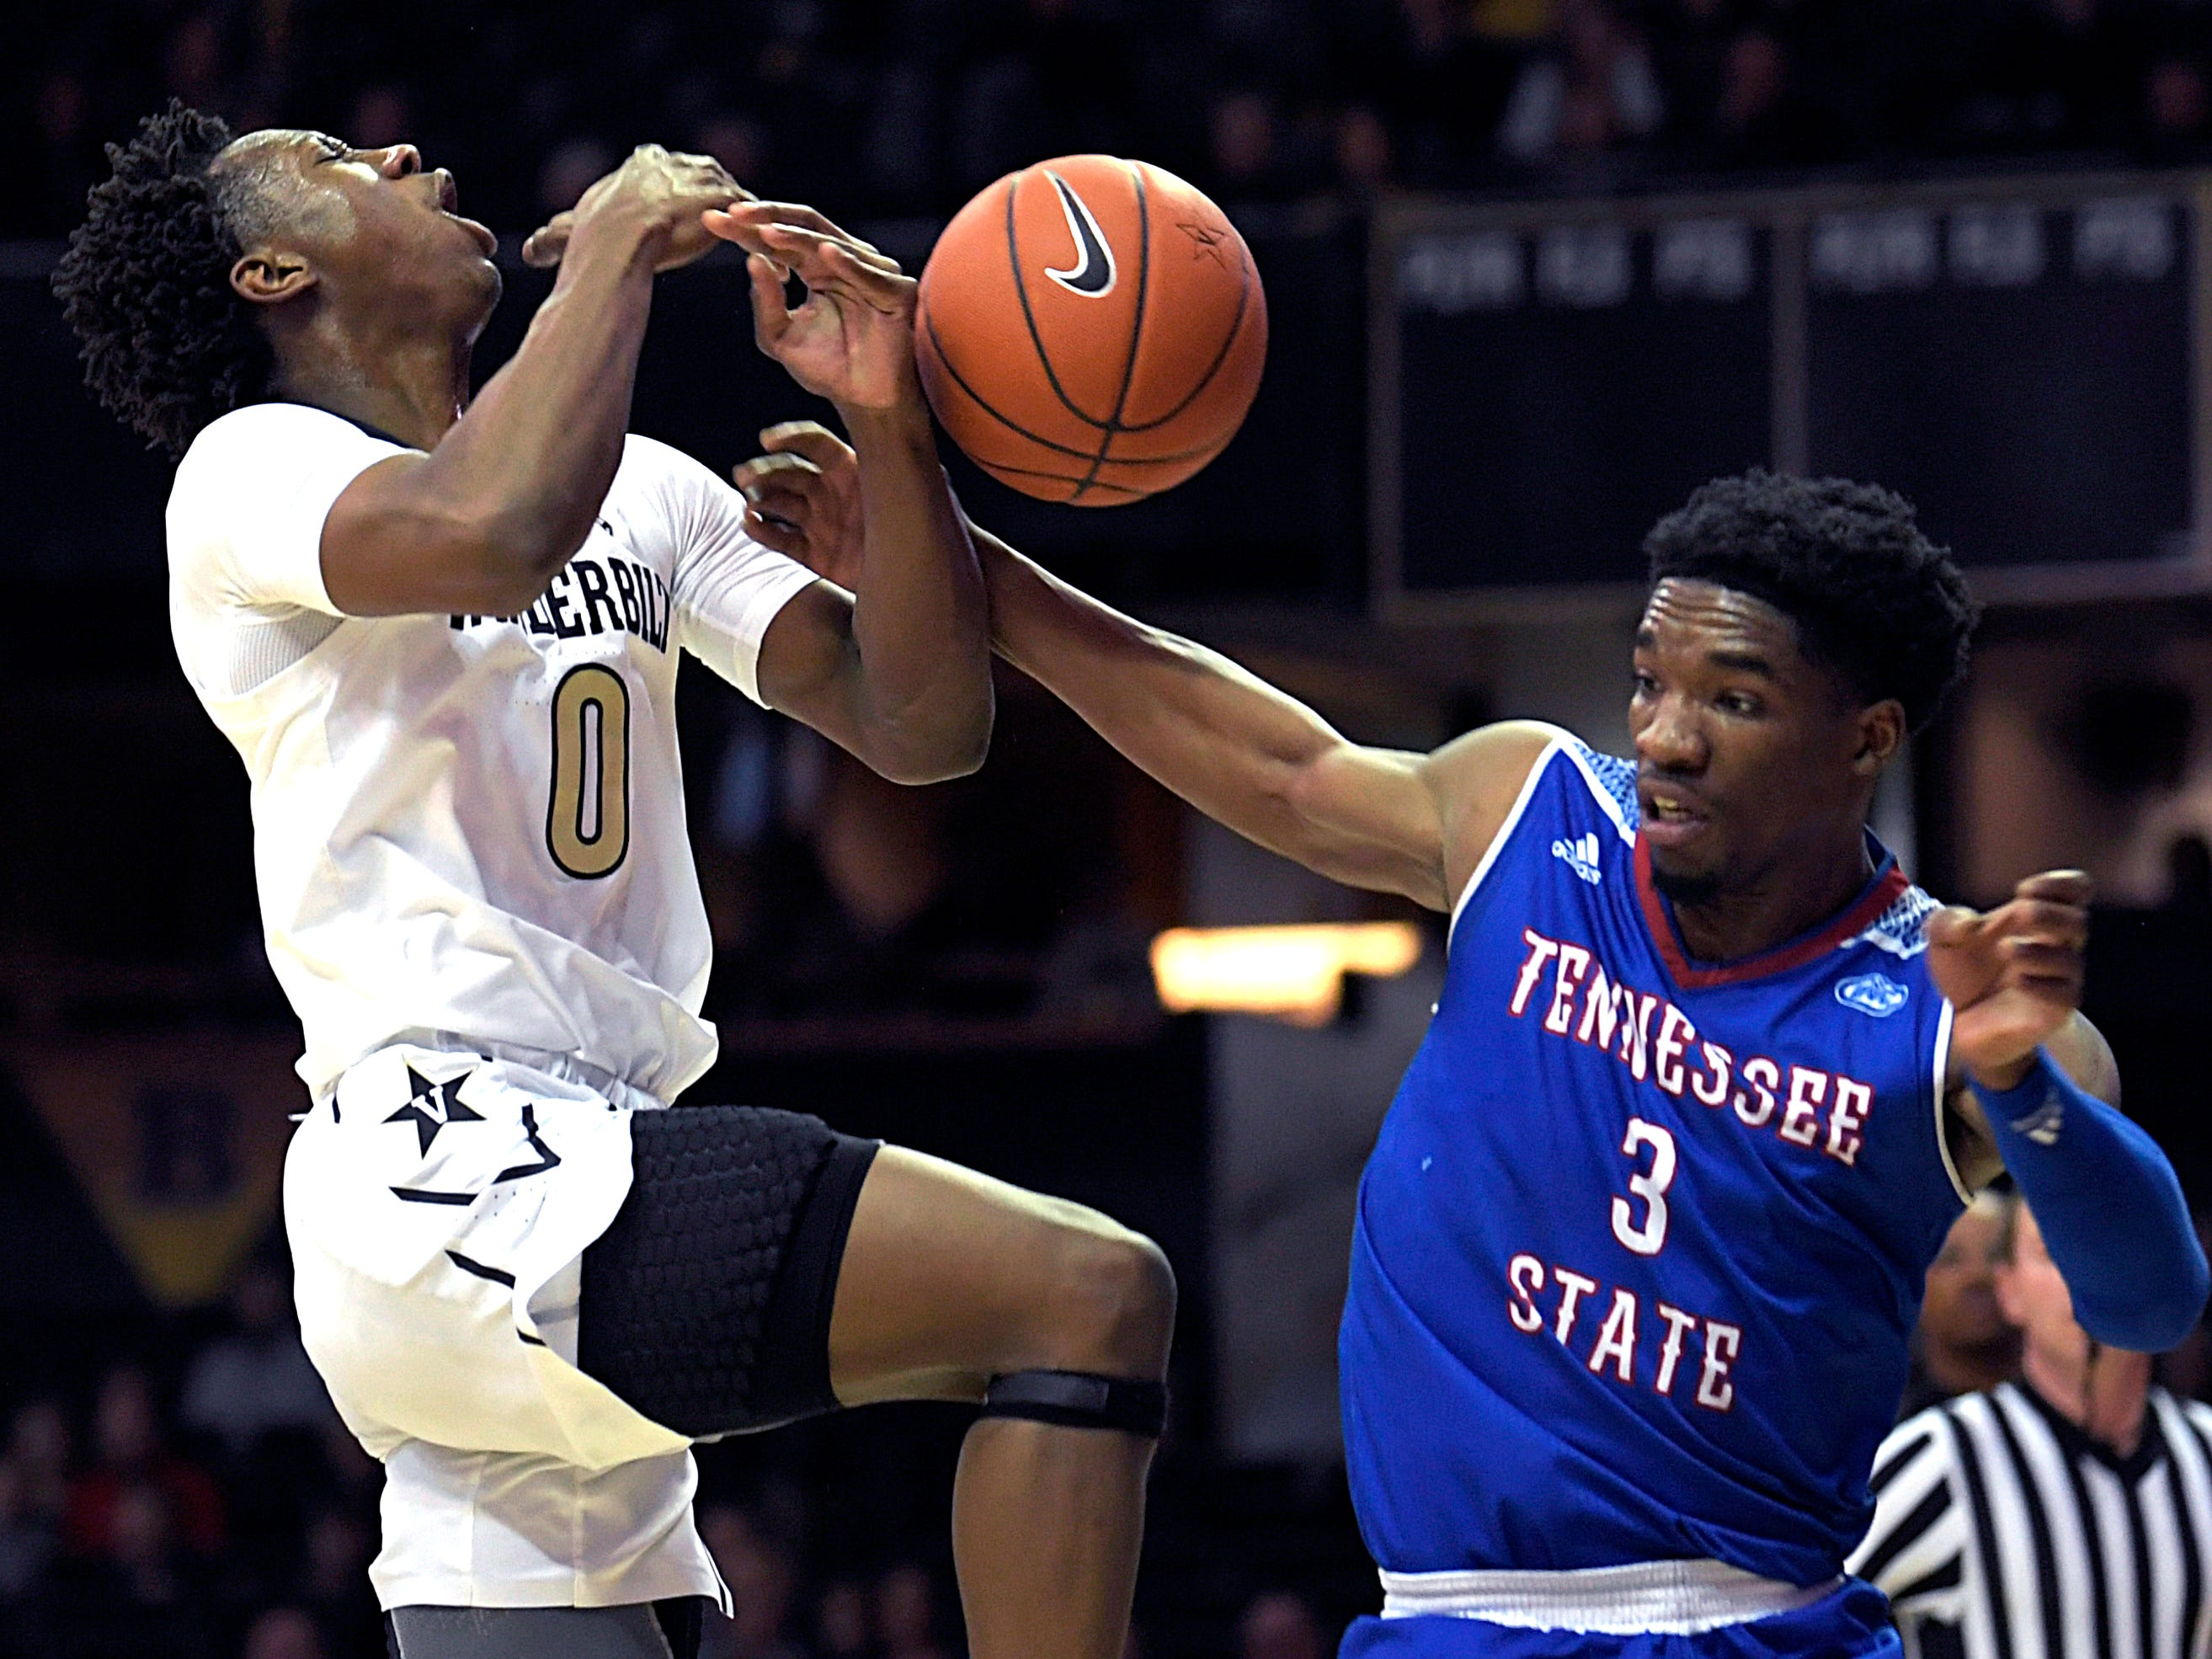 Vanderbilt guard Saben Lee (0) is fouled by Tennessee State guard Donte Fitzpatrick-Dorsey (3) as he drives to the basket during a game at Memorial Gym in Nashville on Saturday, Dec. 29, 2018.